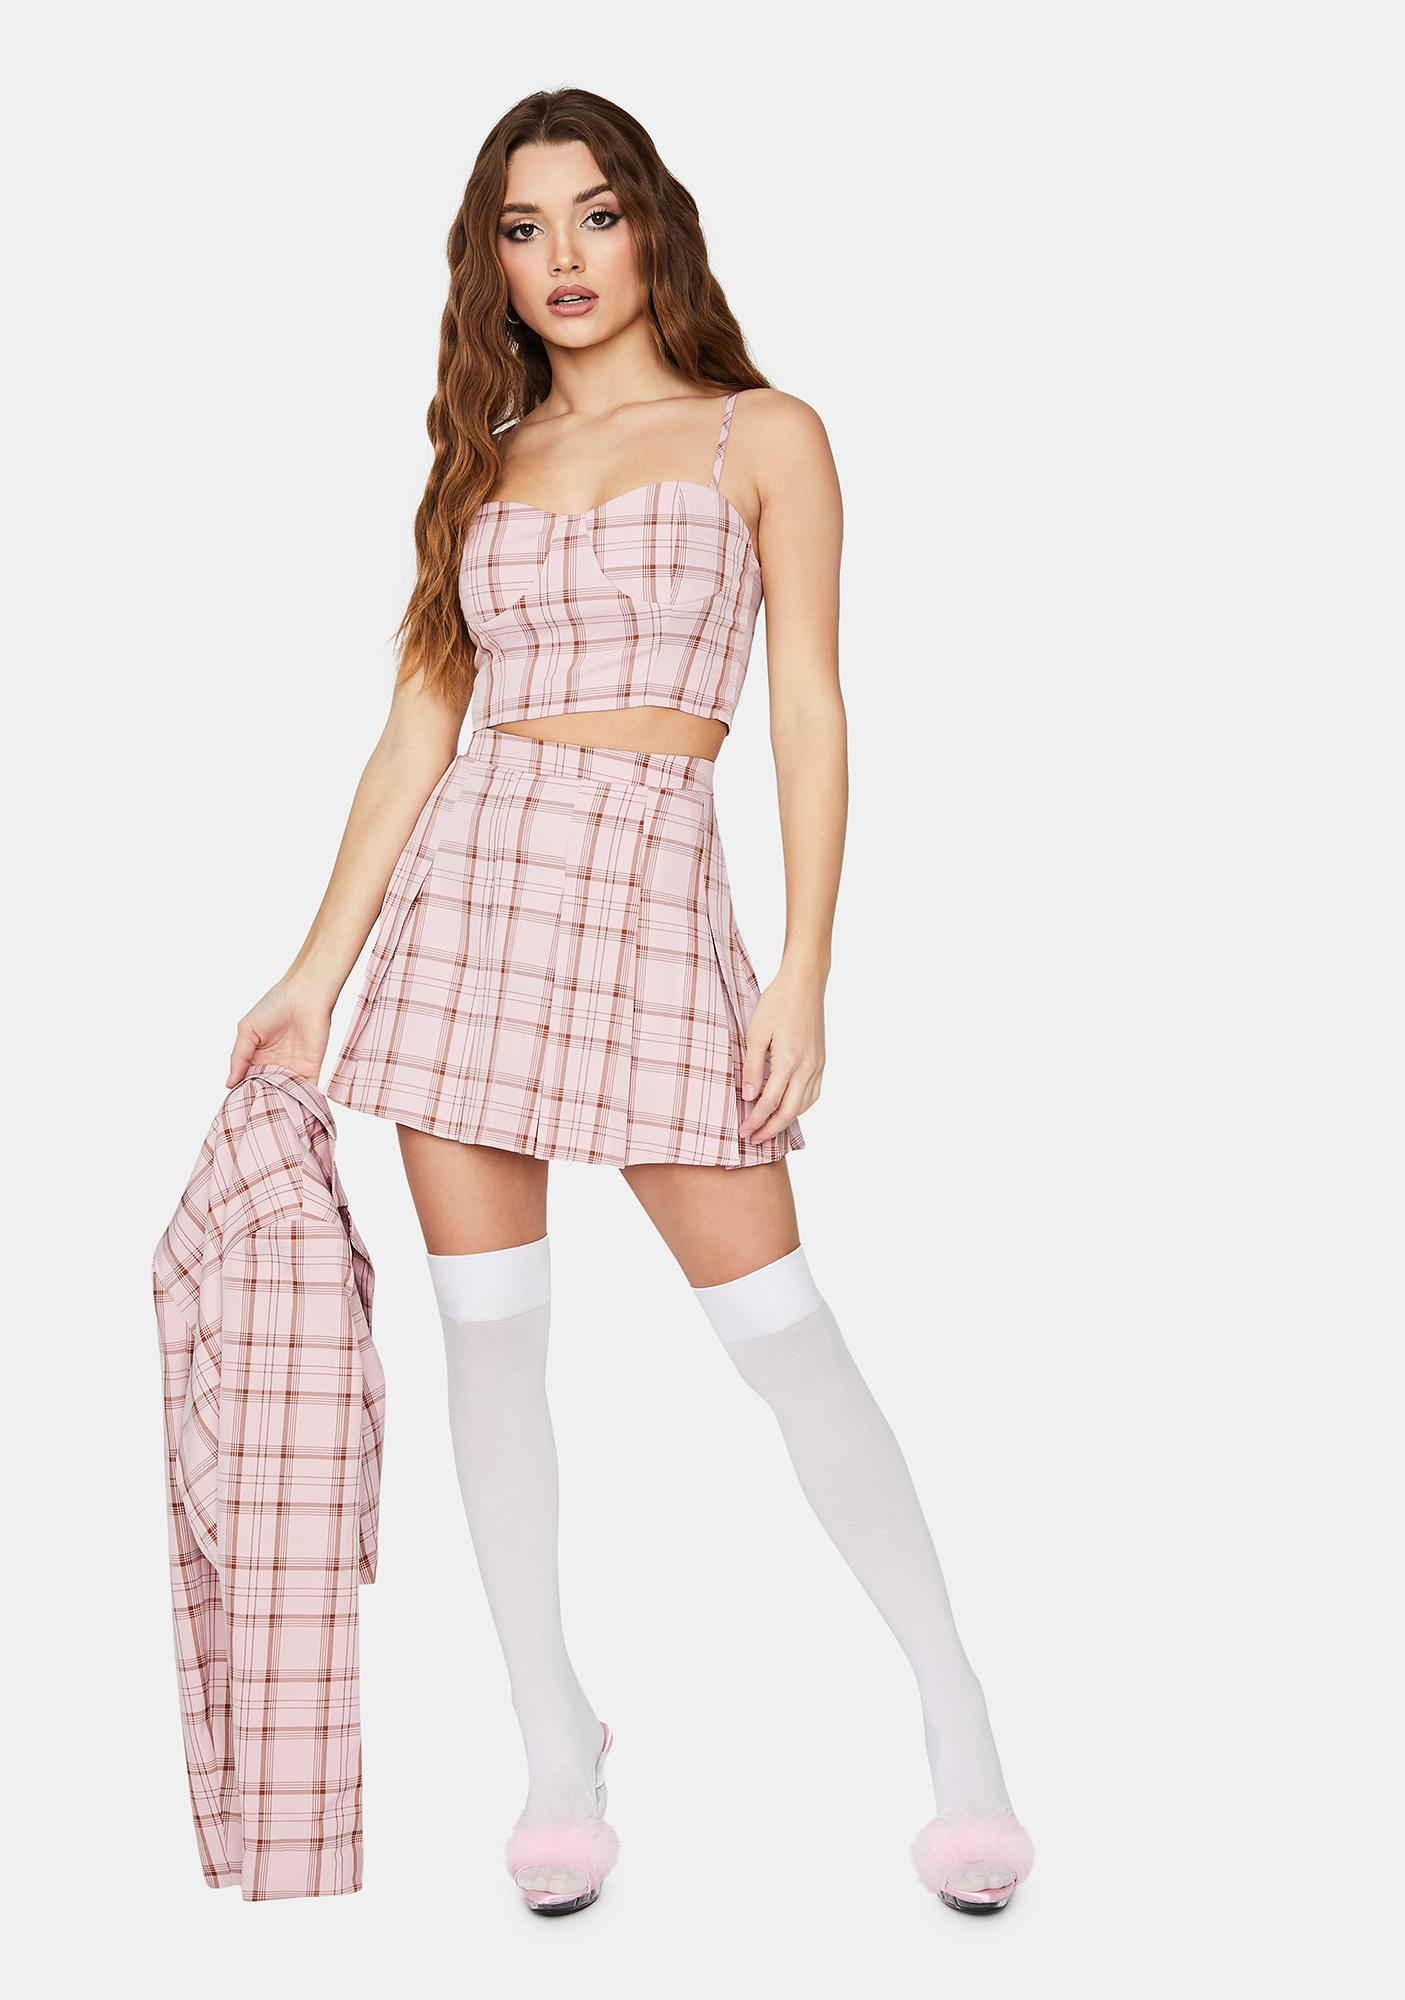 Blush Passion First Plaid Tank Top